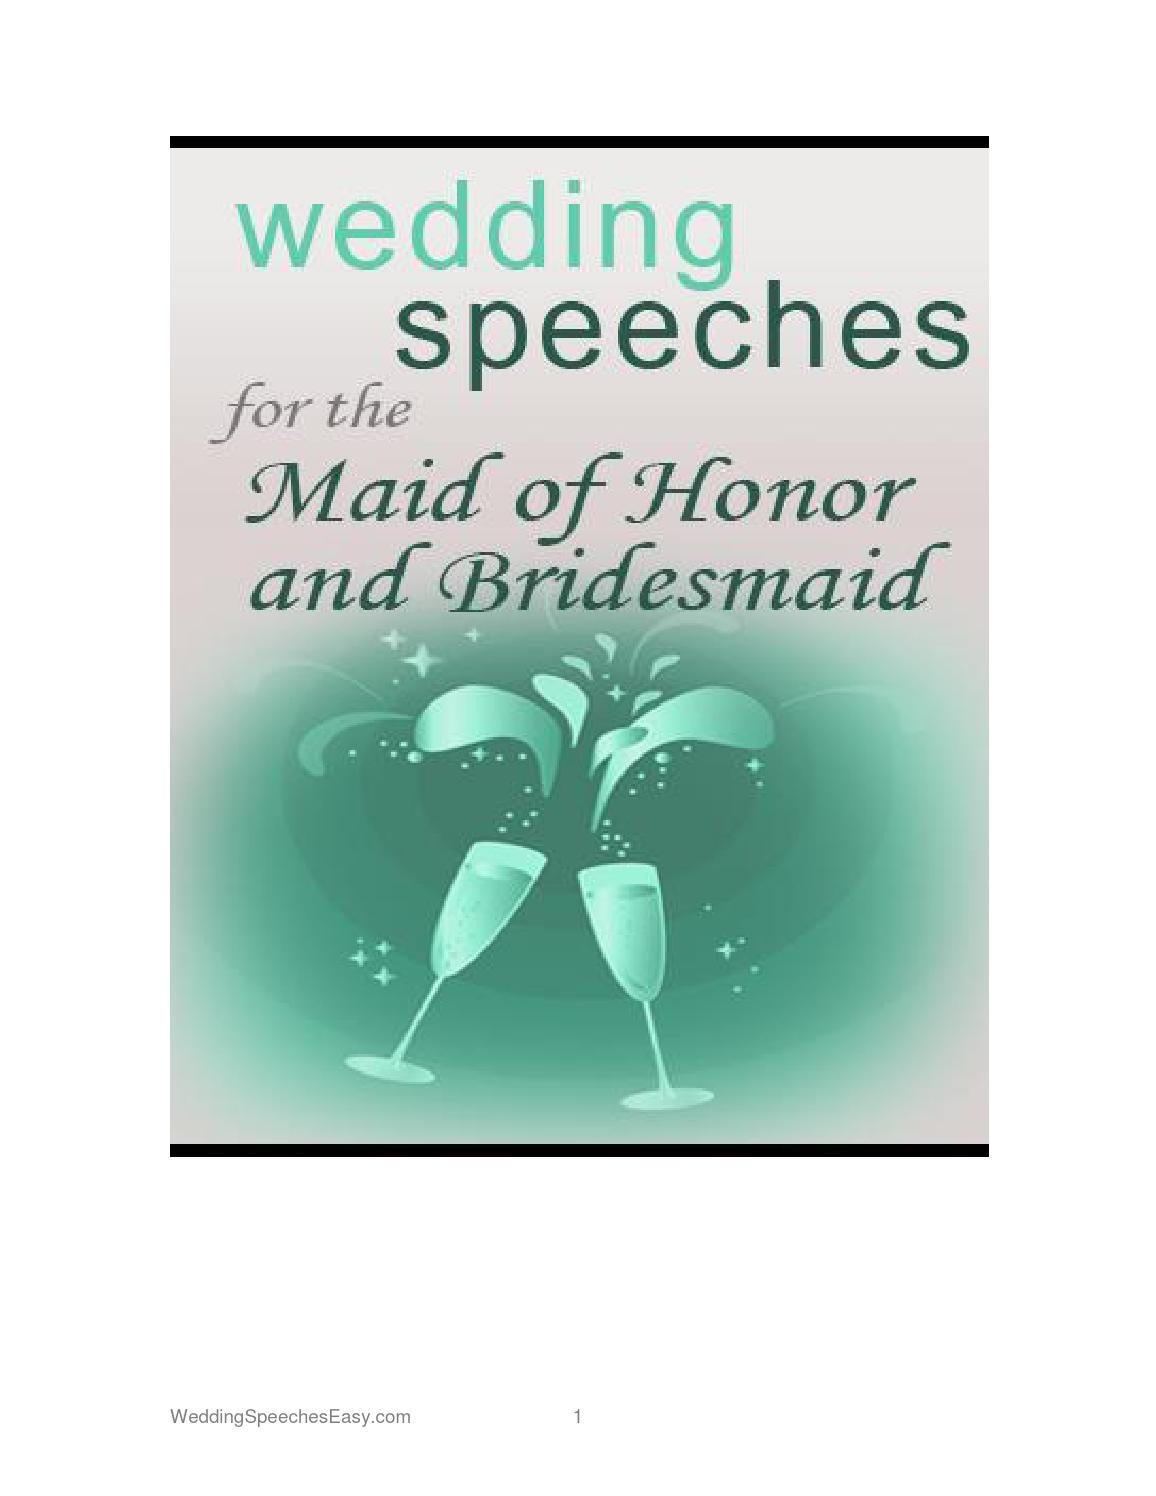 Wedding Speeches For The Maid Of Honor And Bridesmaids By EbooksforLife